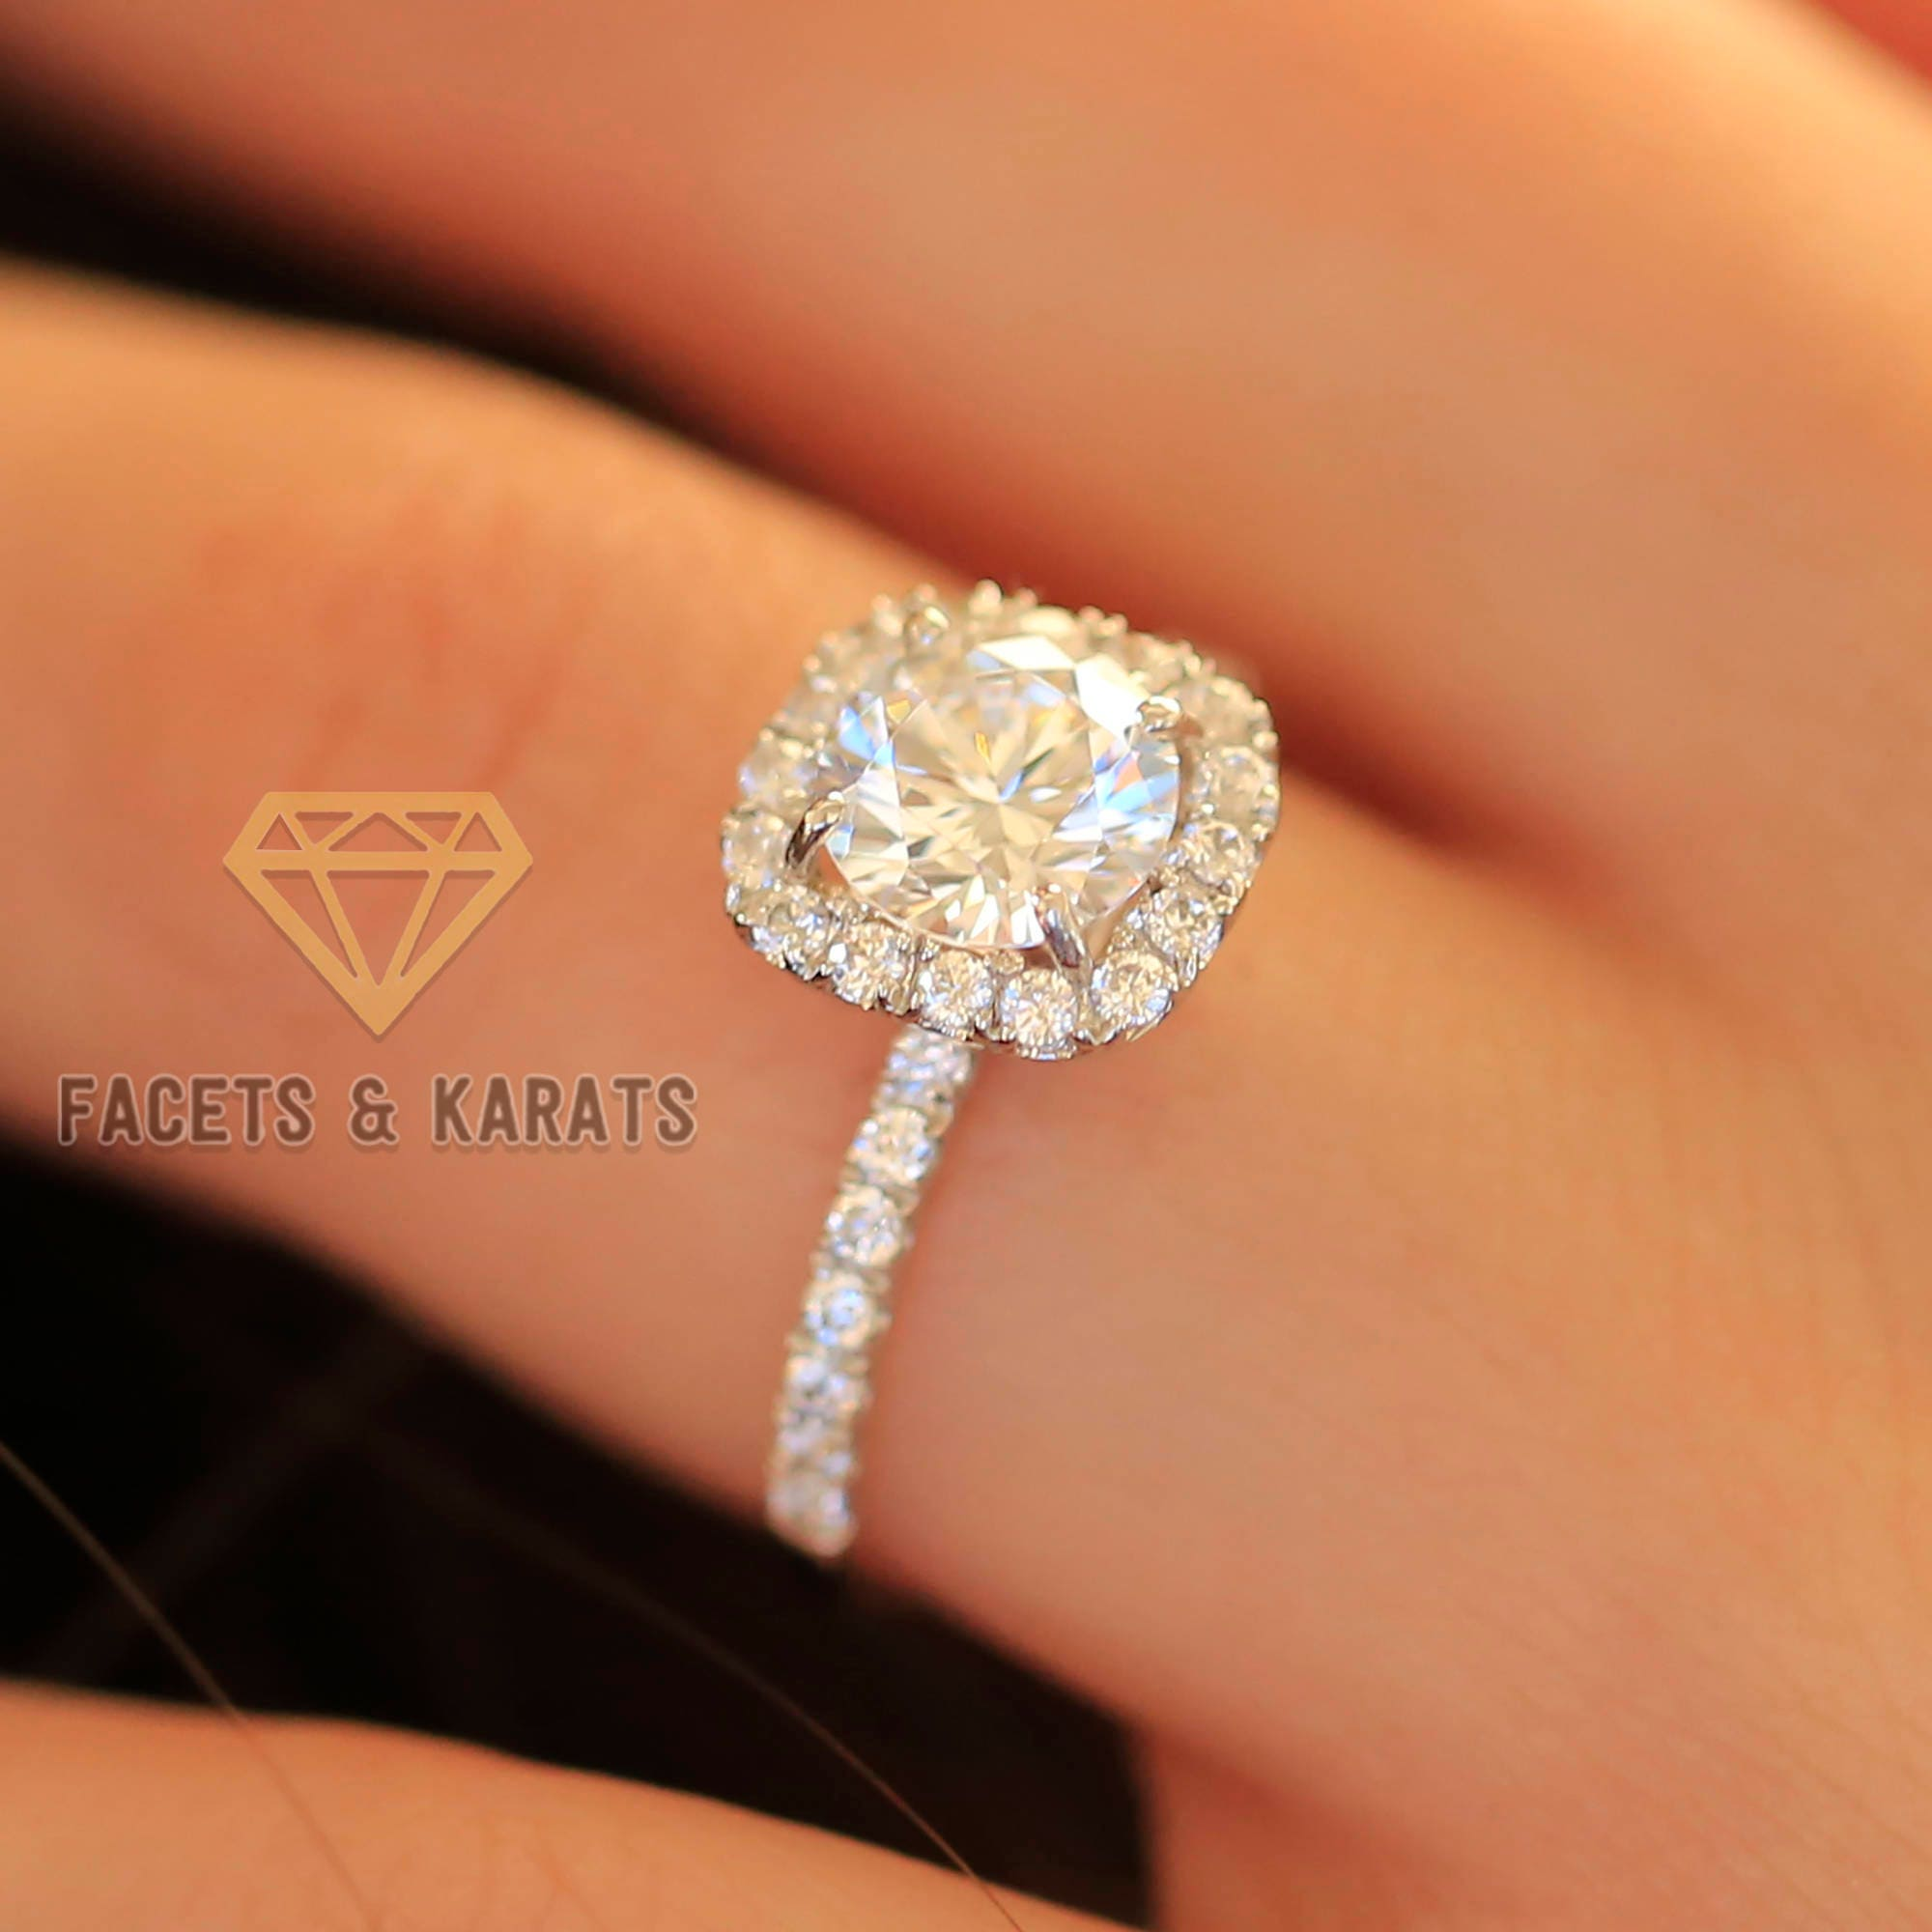 Details about  /2.50 CT Halo Cushion Cut 18K White Gold Over Women Wedding Engagement Ring Set